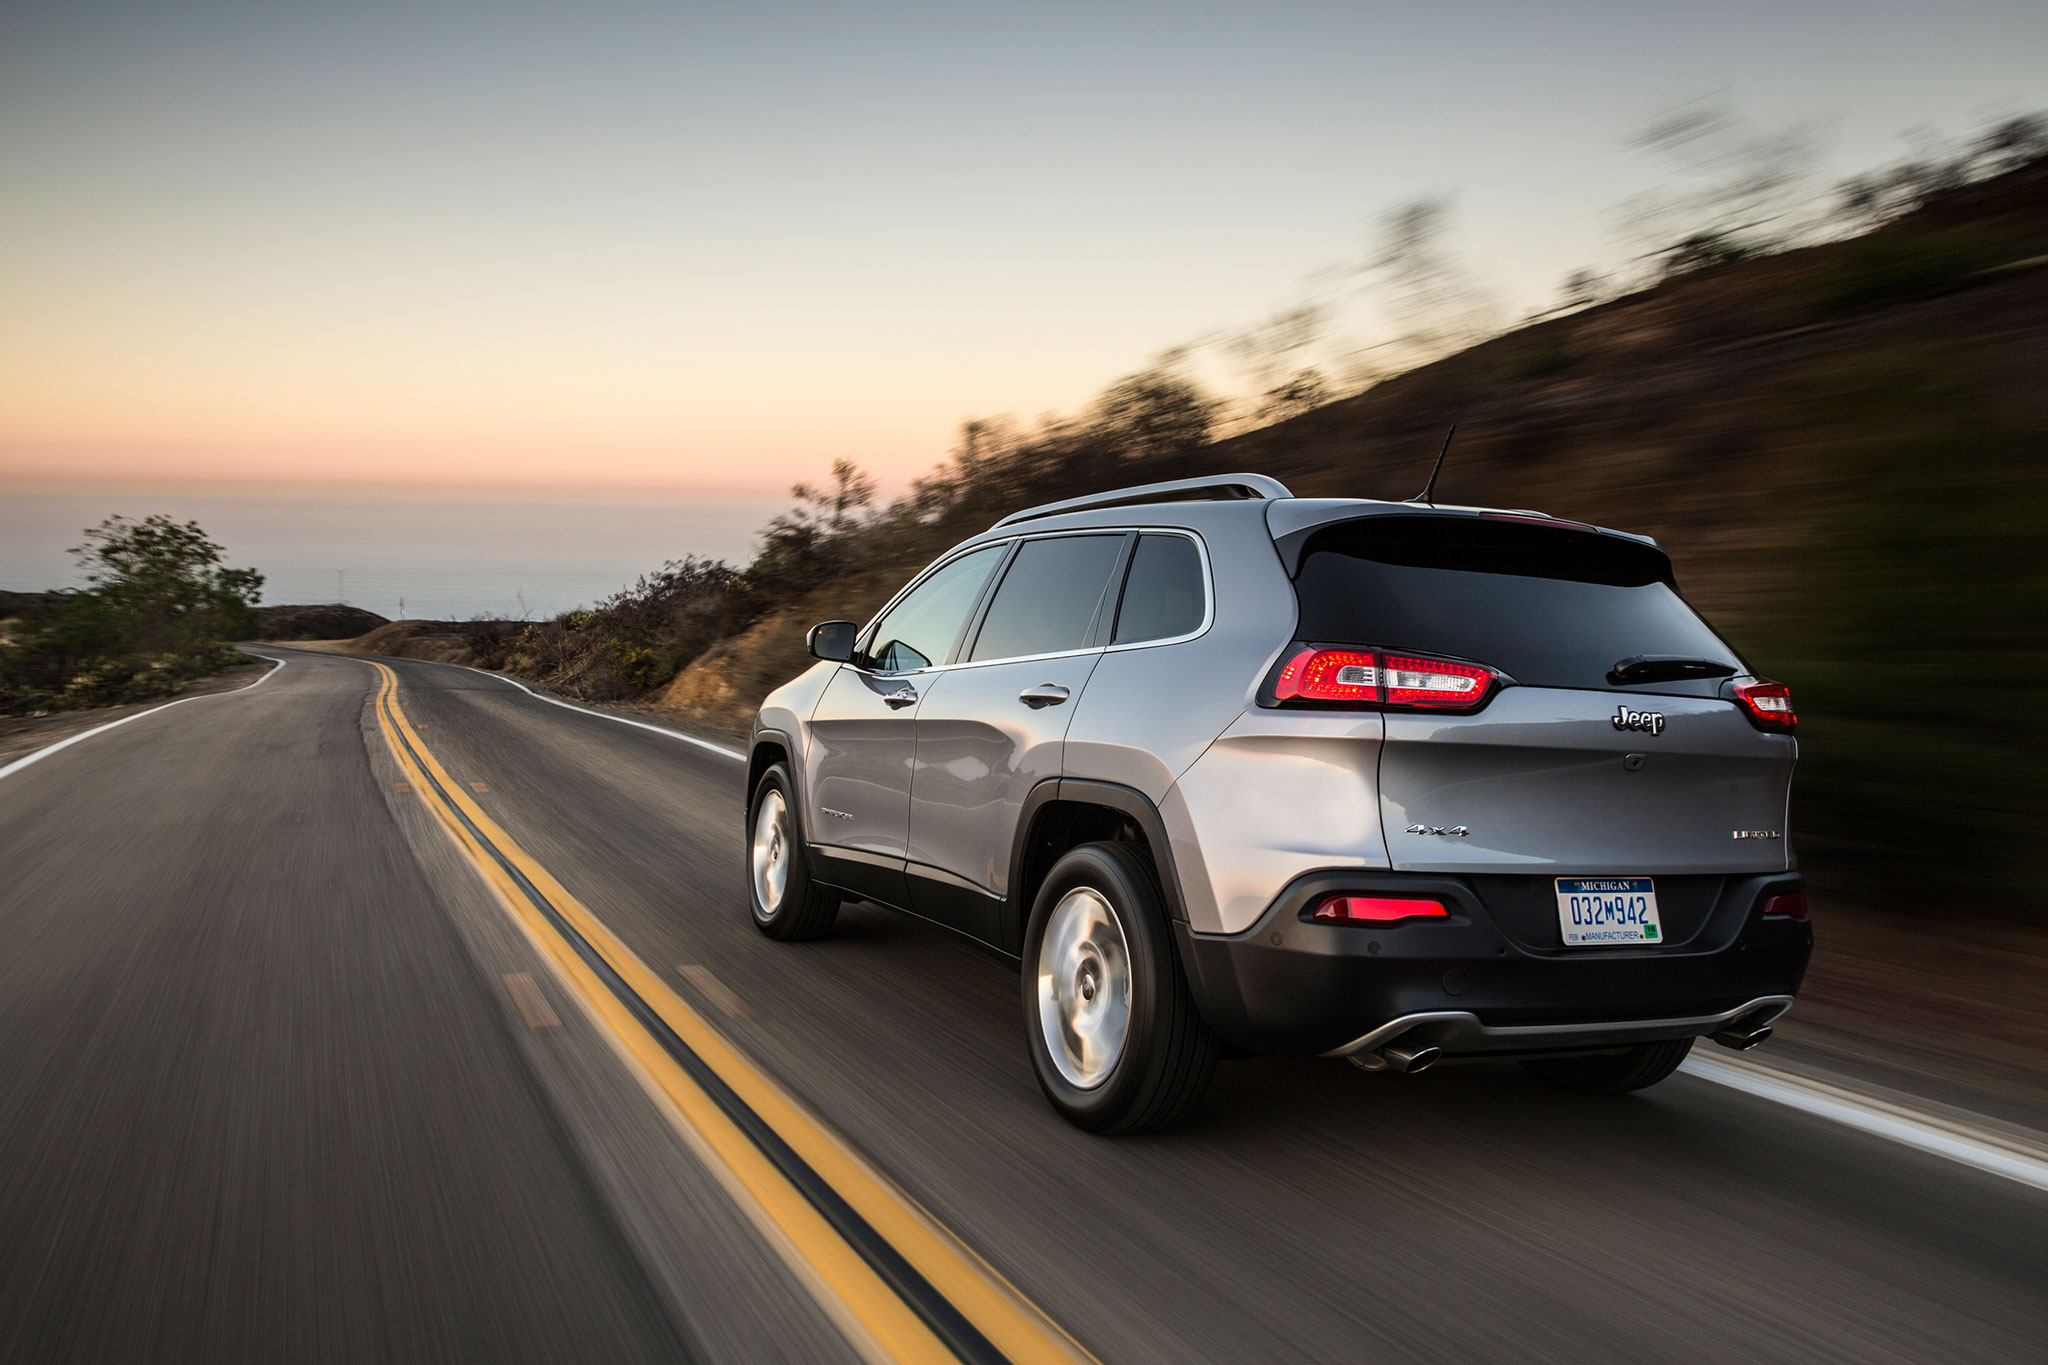 2014 jeep cherokee not recommended by consumer reports automobile magazine. Black Bedroom Furniture Sets. Home Design Ideas